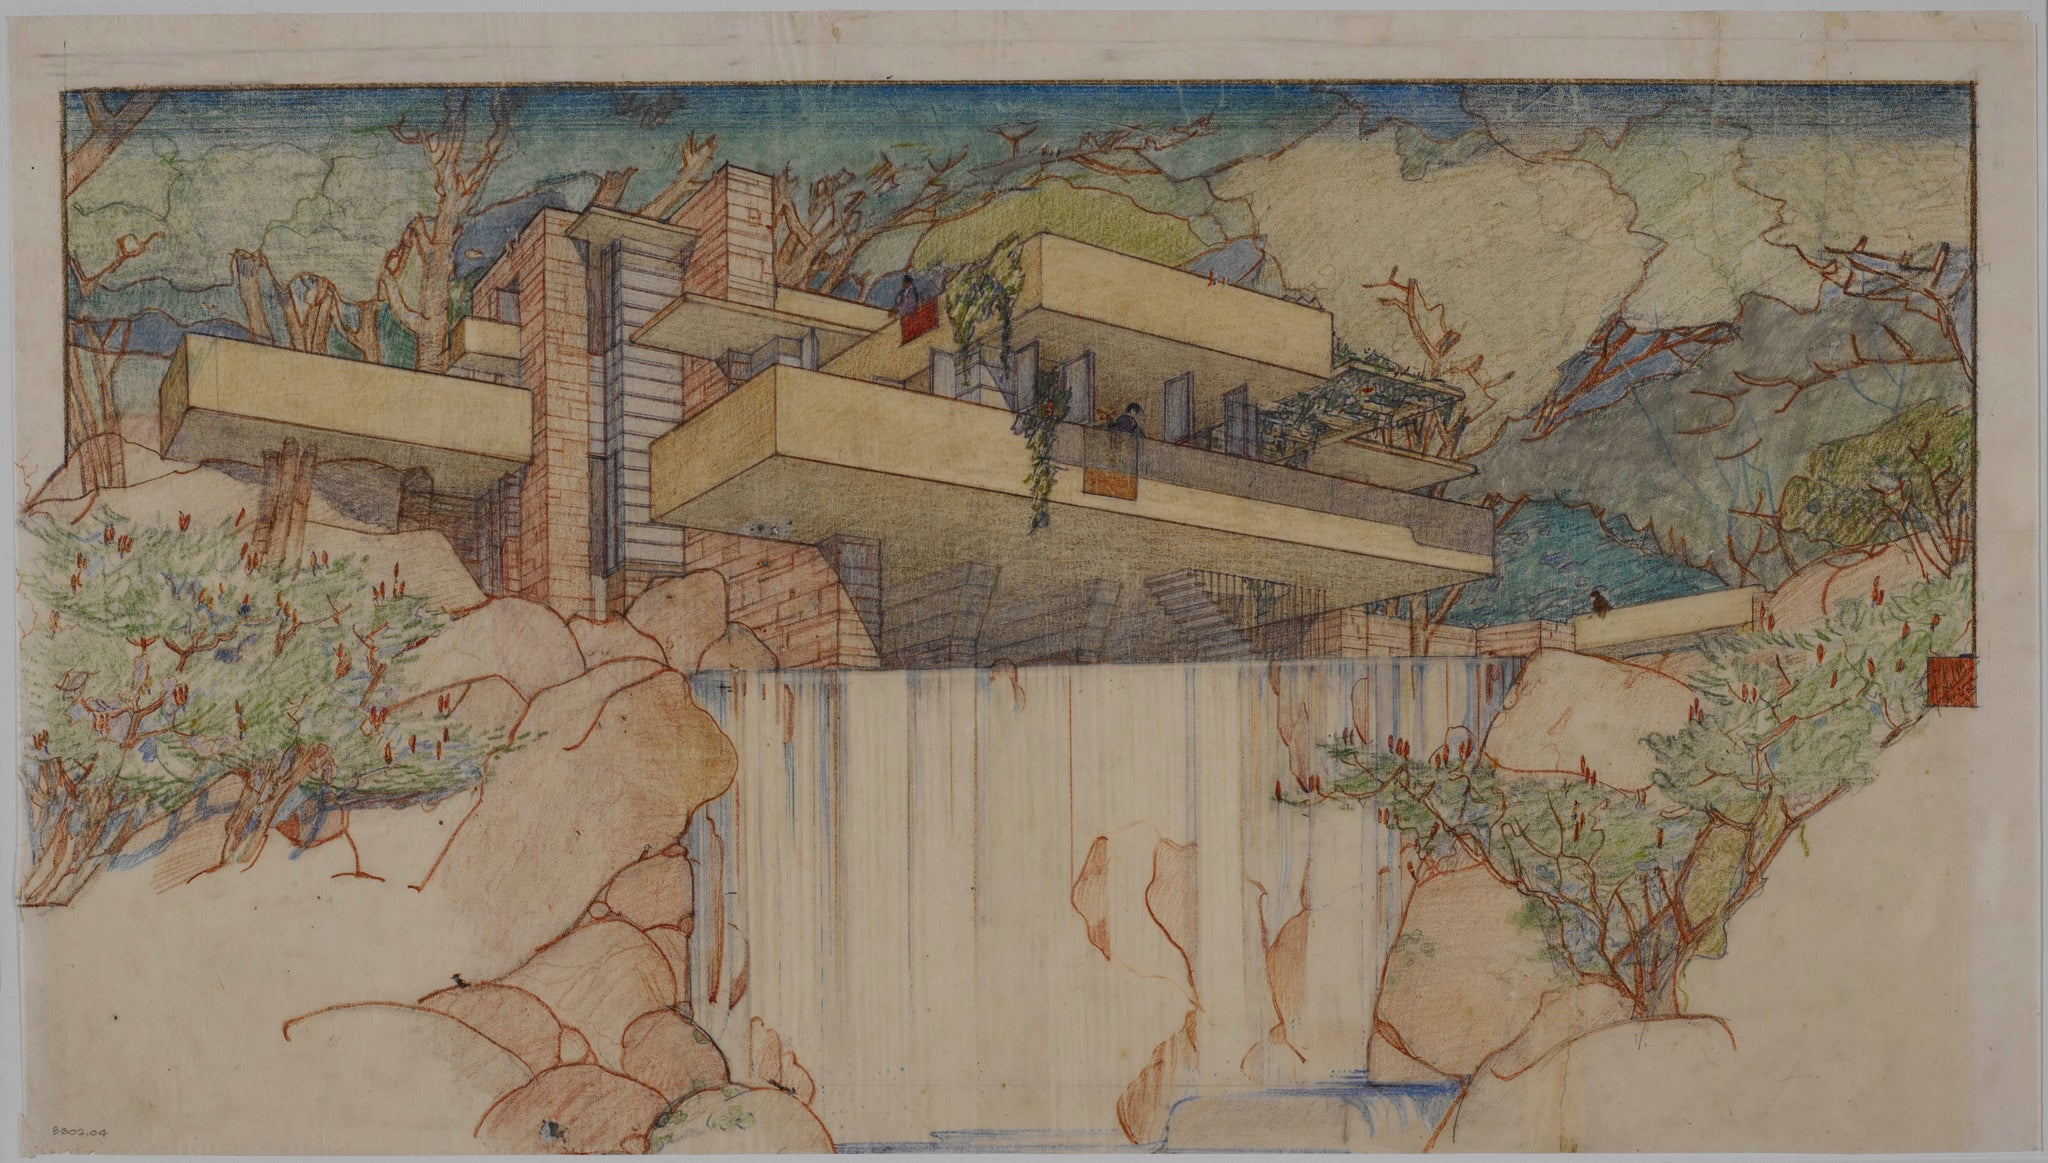 Sketch of Fallingwater by Frank Lloyd Wright